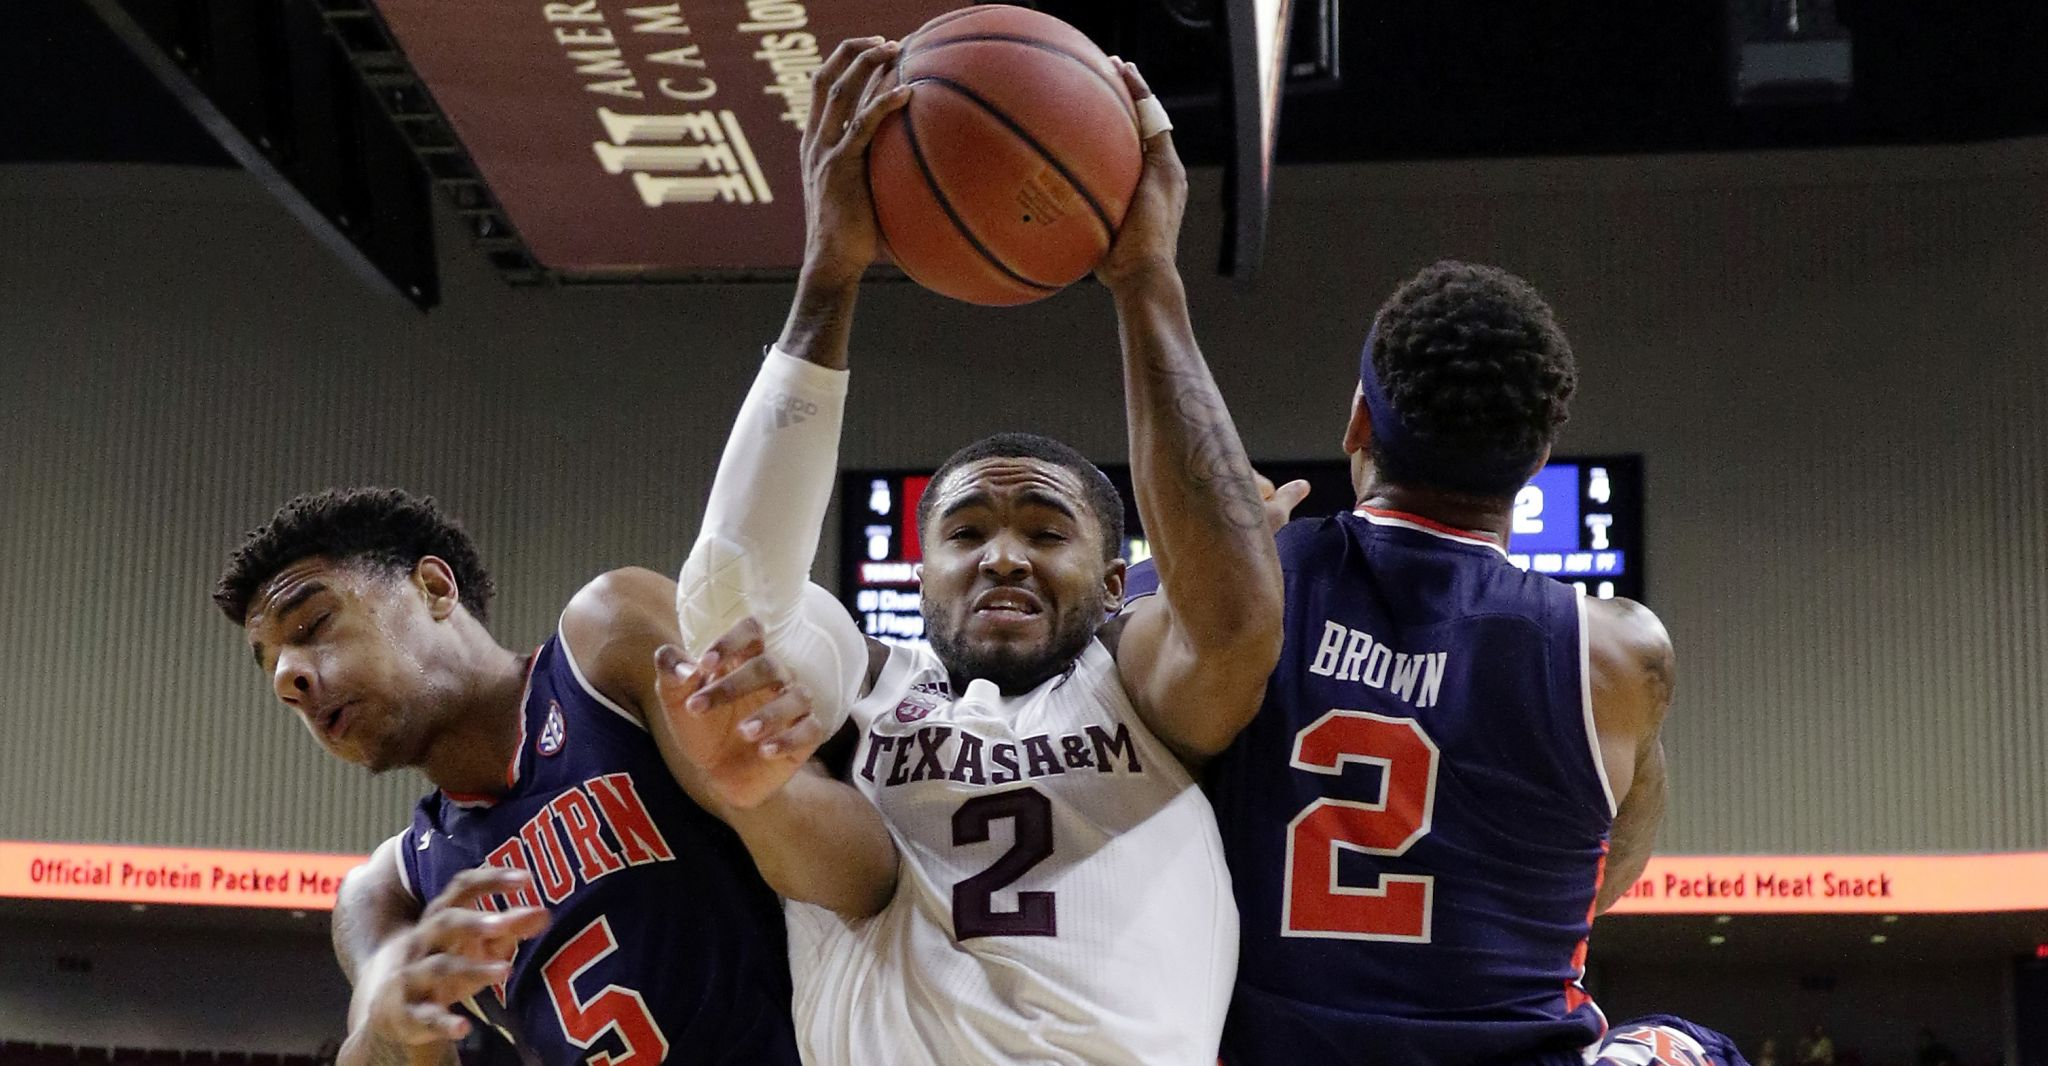 Texas A&M suffers ugly loss to No. 14 Auburn